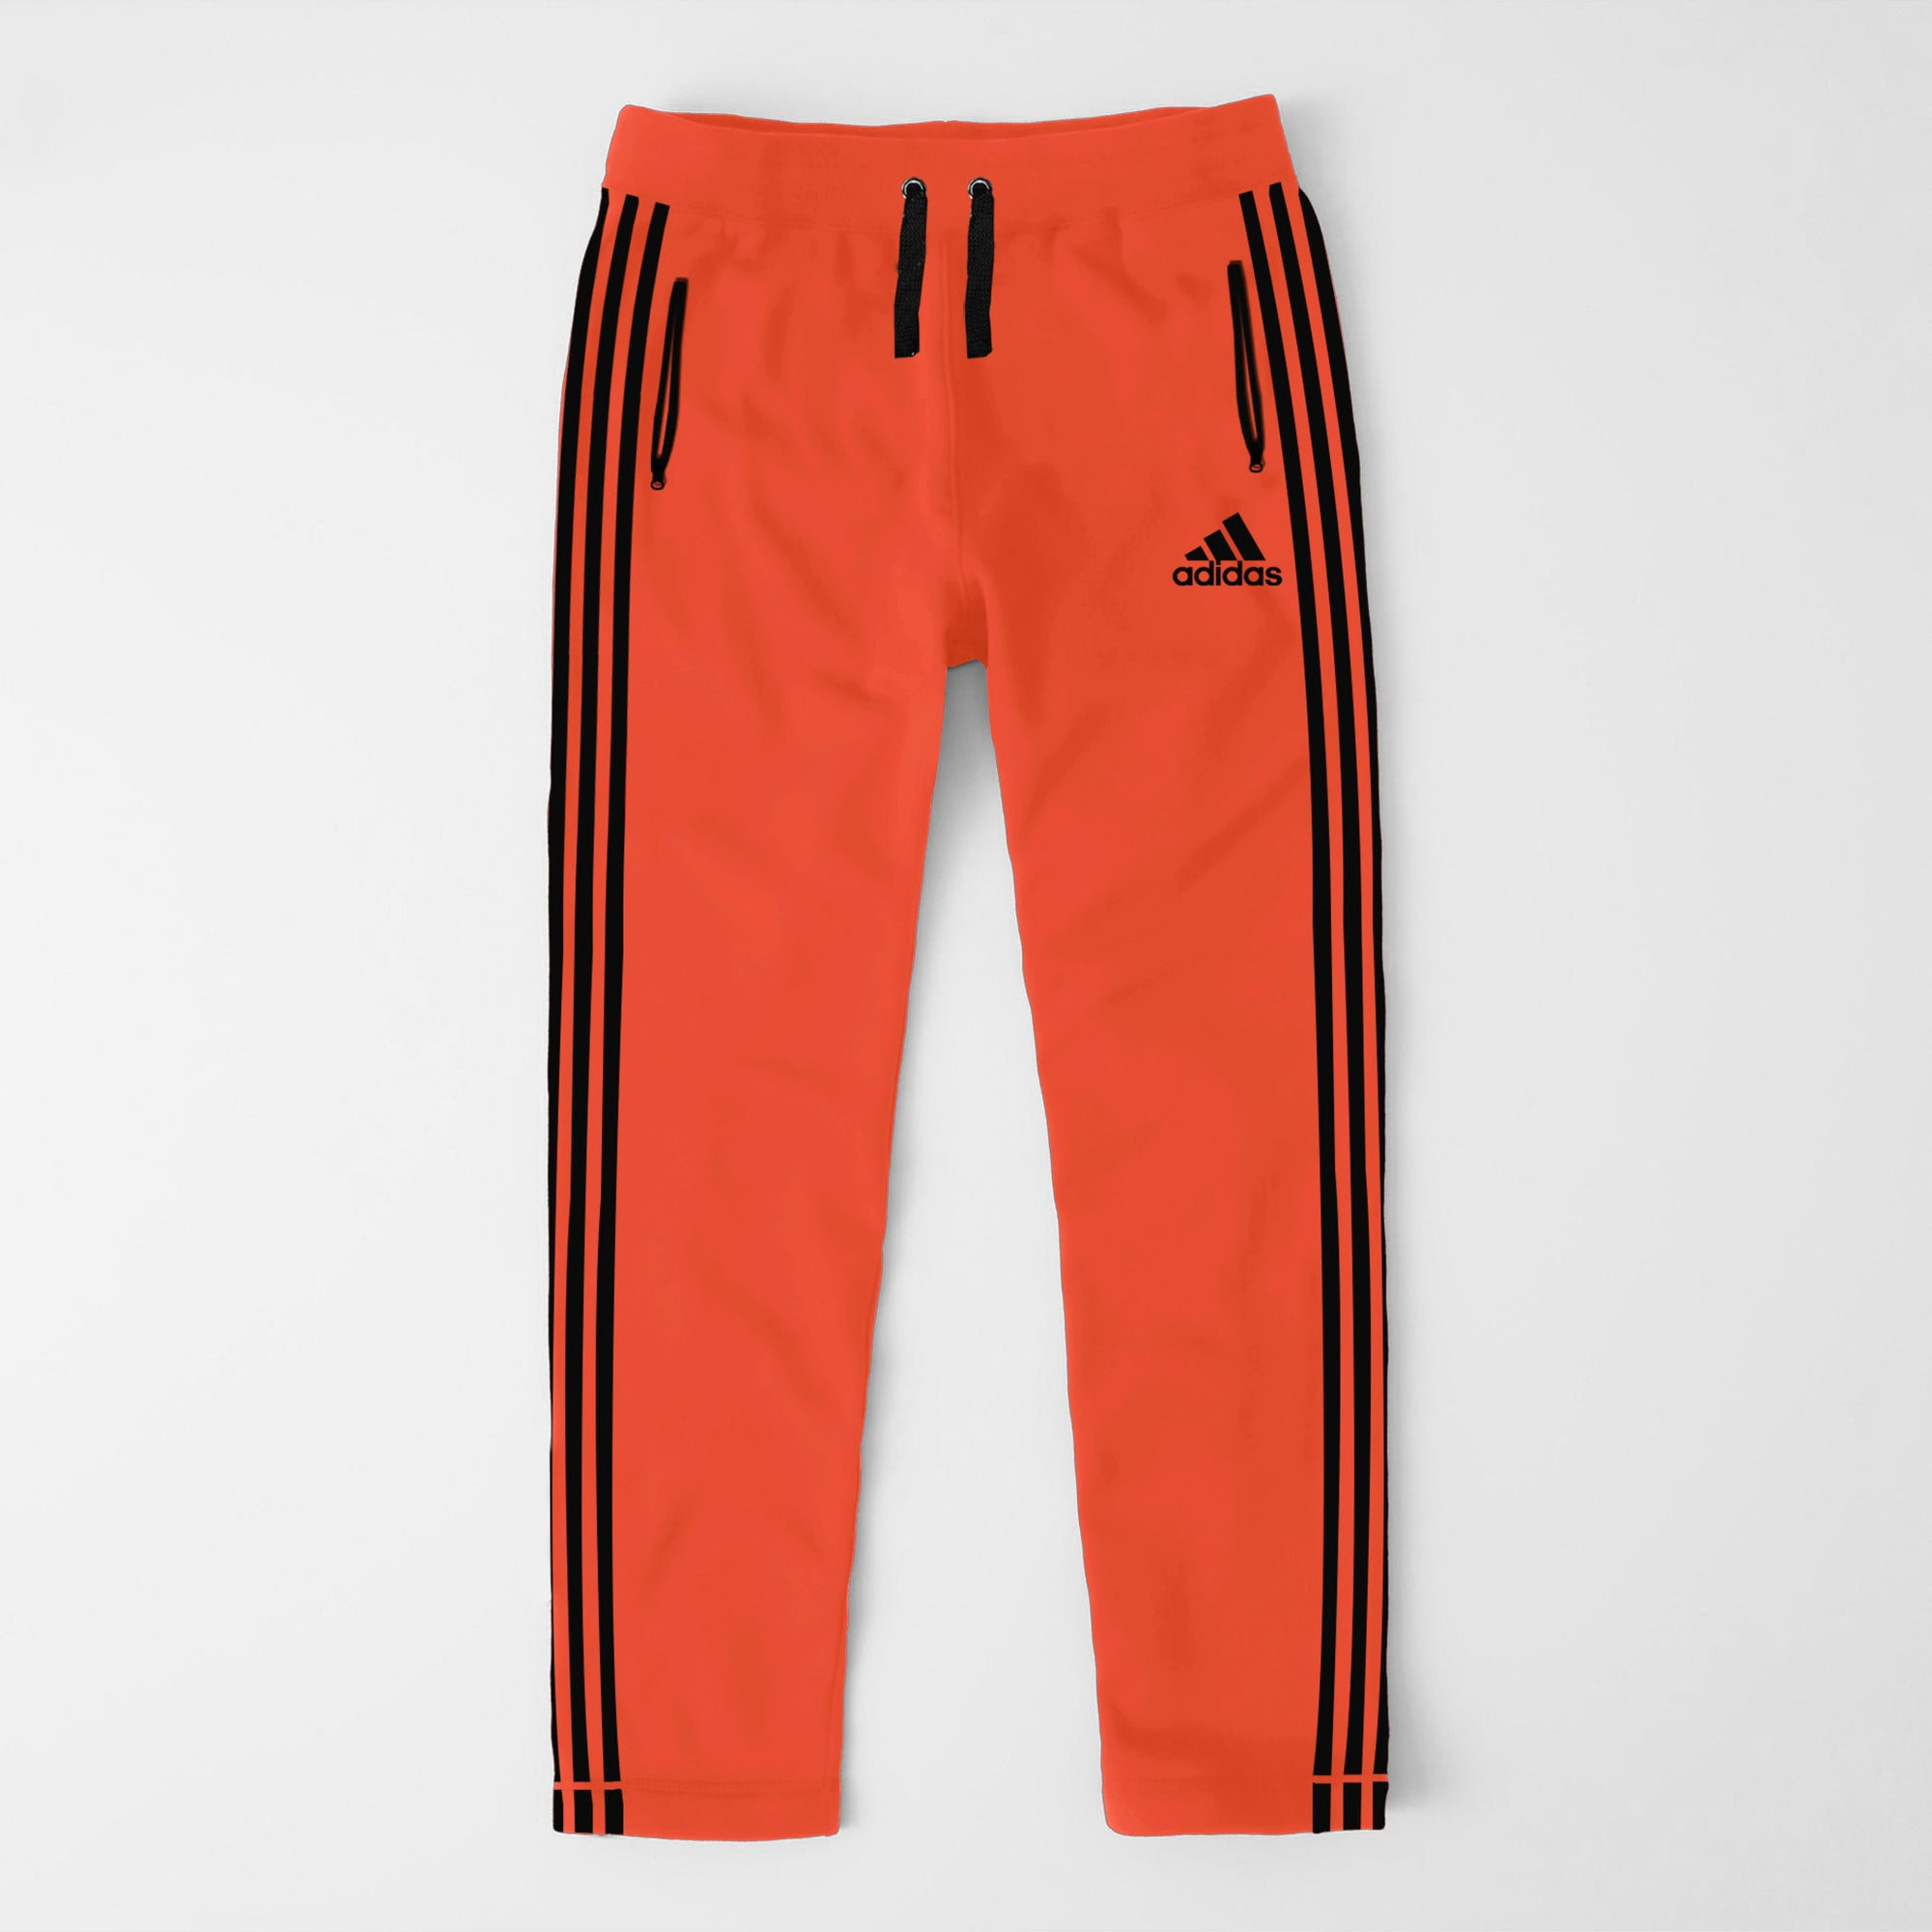 Adidas Single Jersey Regular Fit Trouser For Men-Orange With Light Black Stripes-SP387